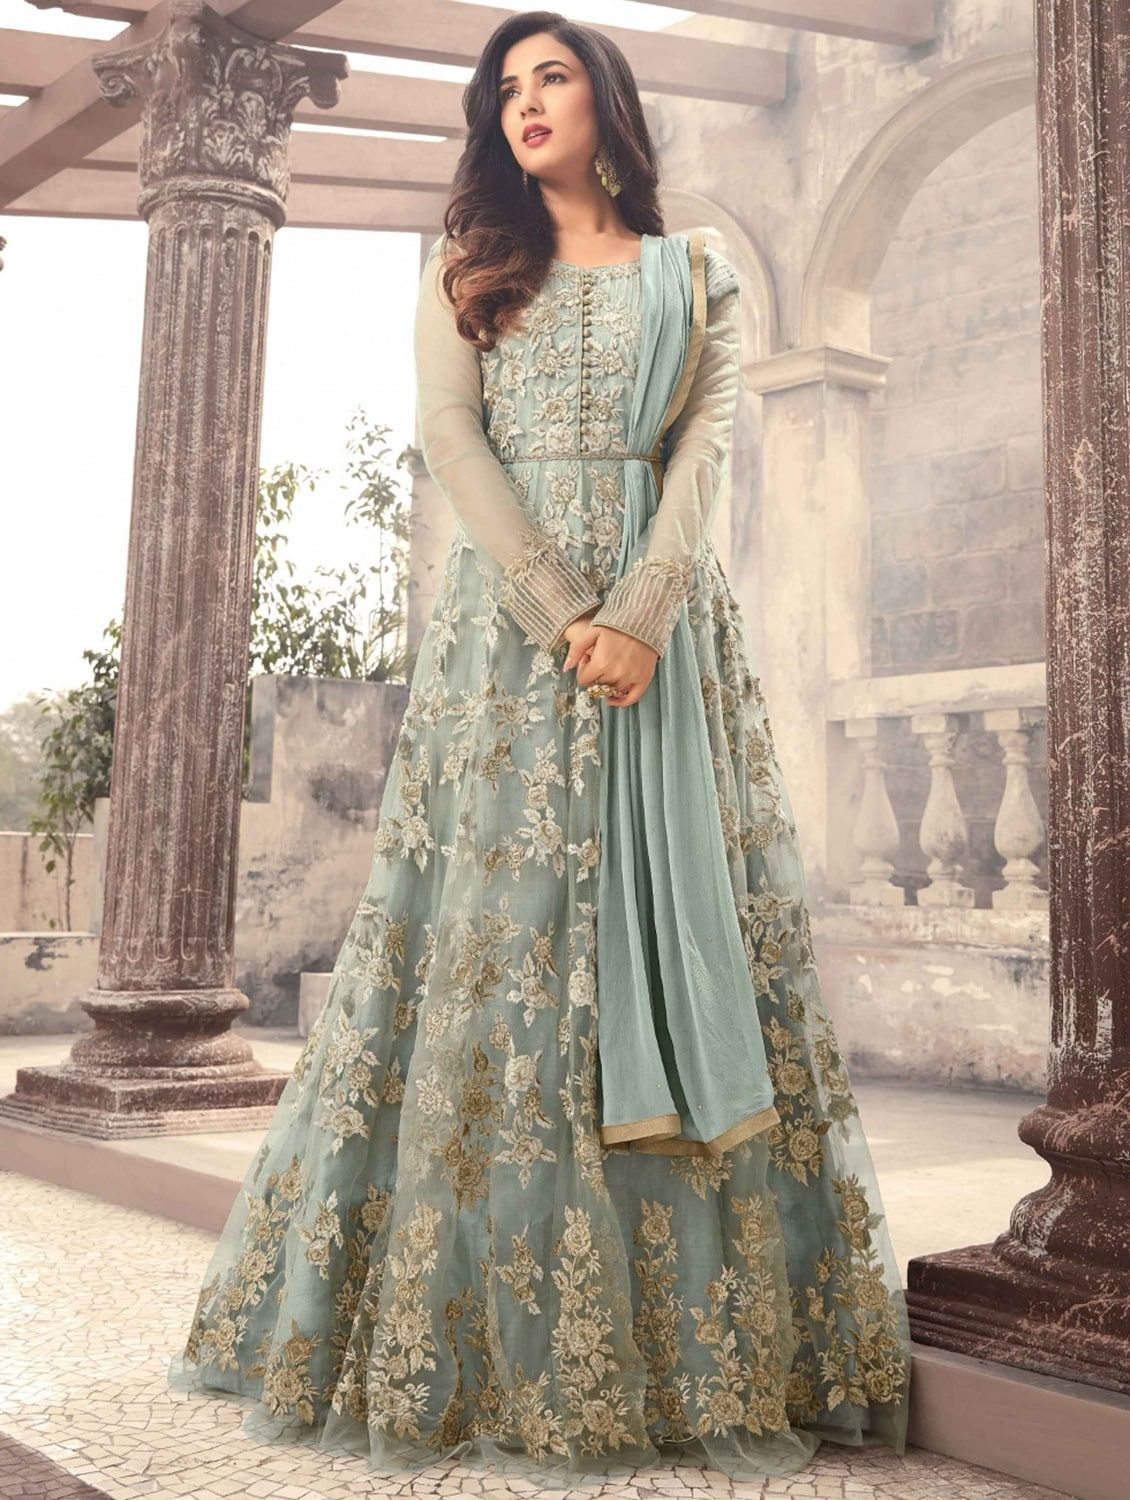 044d82f3ff Buy Embroidered Semi-stitched Flared Suit by Bhumik Enterprise - Online  shopping for Semi-stitched Suits in India | 15277816